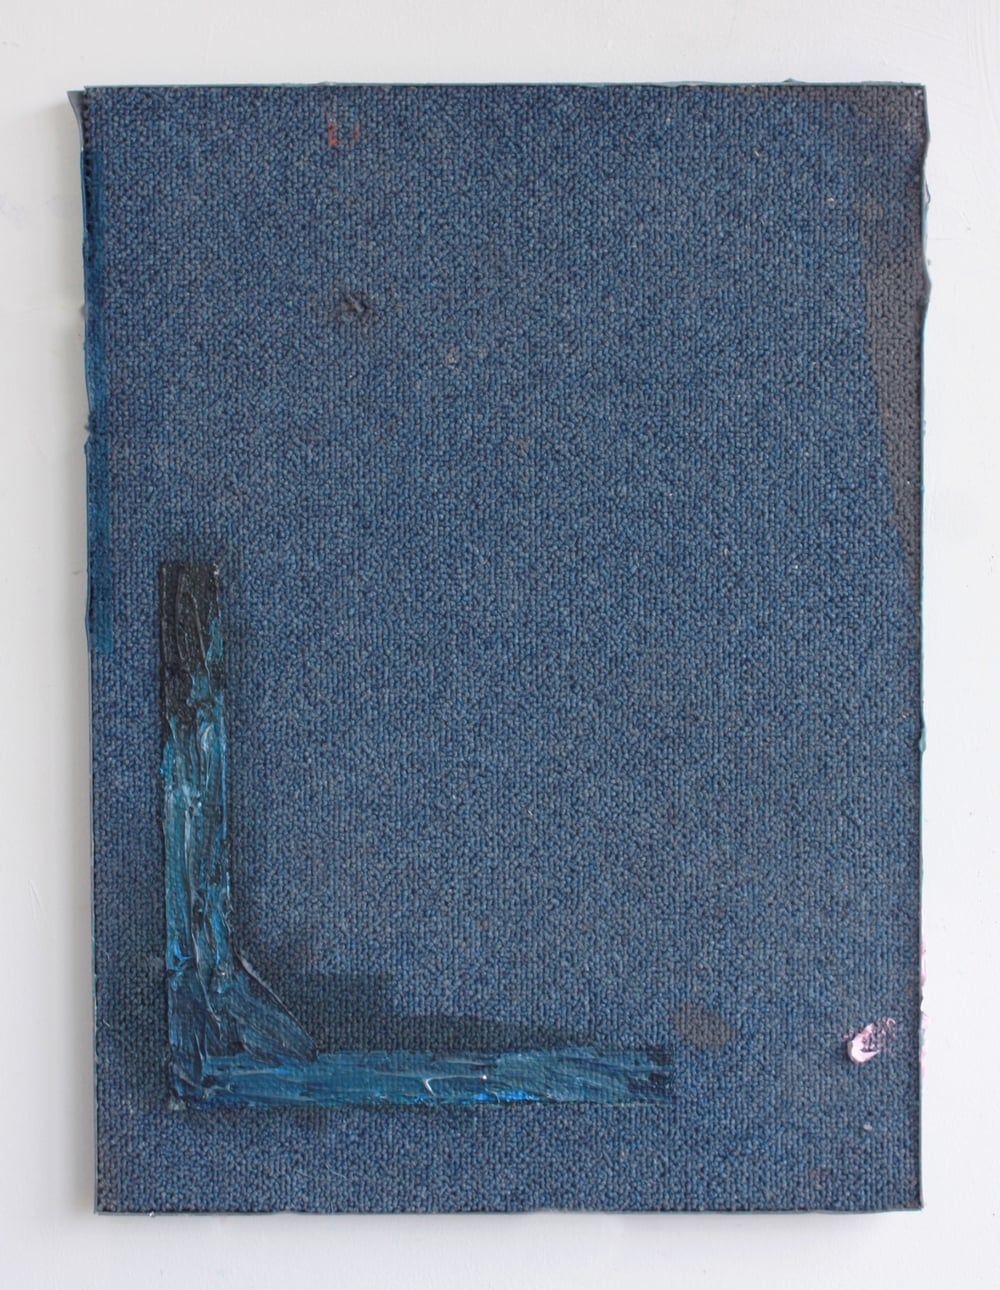 'Untitled' 2014 Oil on carpet tile 32 x 18  x 2cm